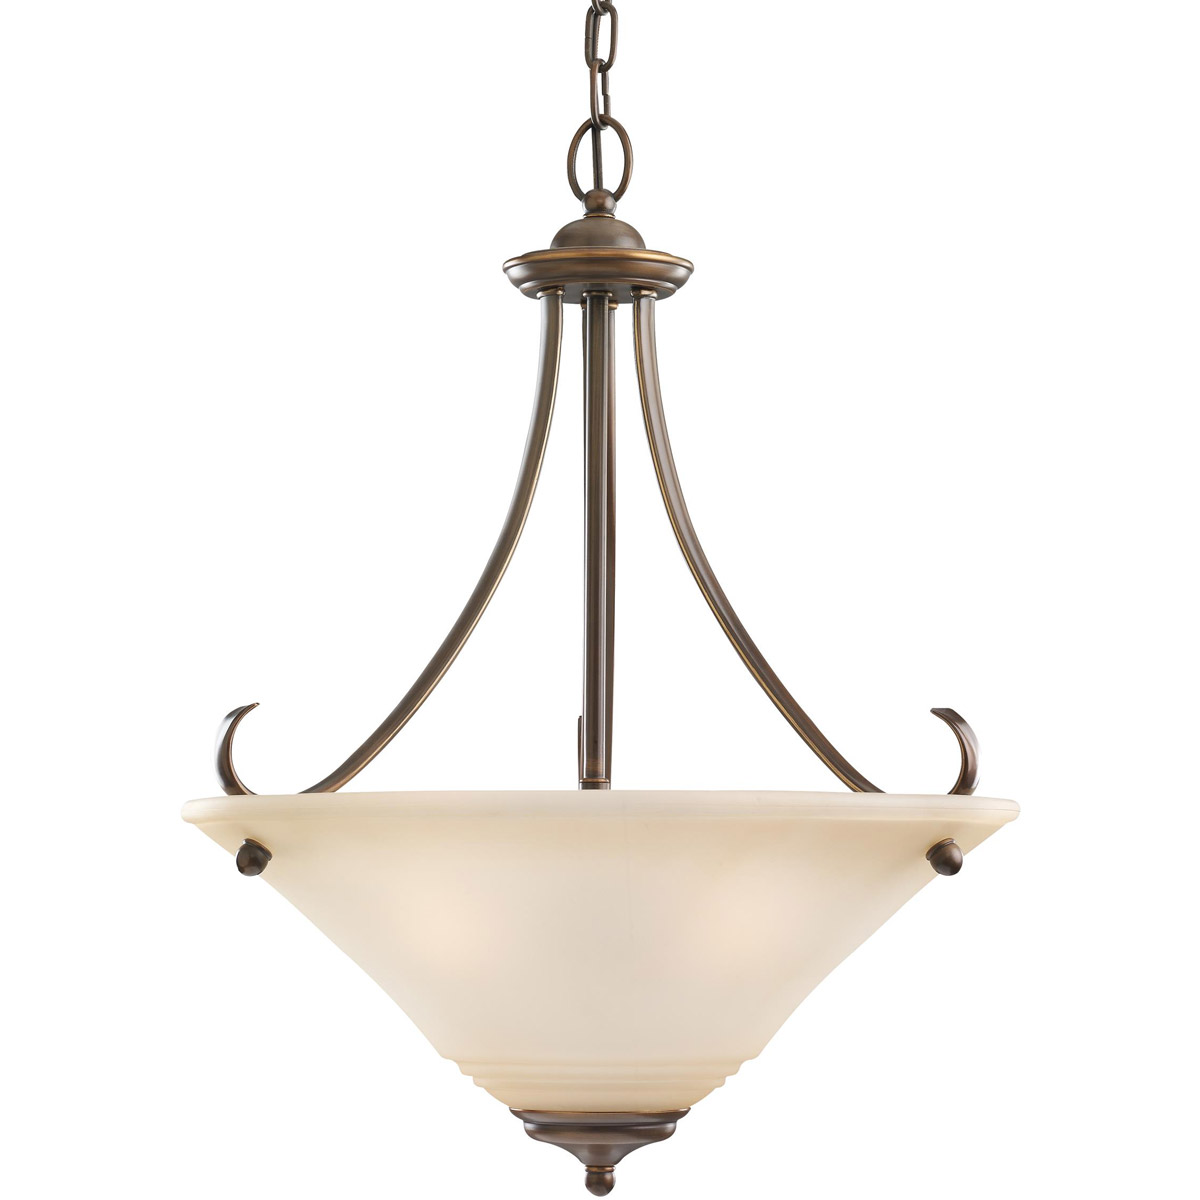 Sea Gull 65381-829 Parkview 3 Light 20 inch Russet Bronze Pendant Ceiling Light in Ginger Glass photo